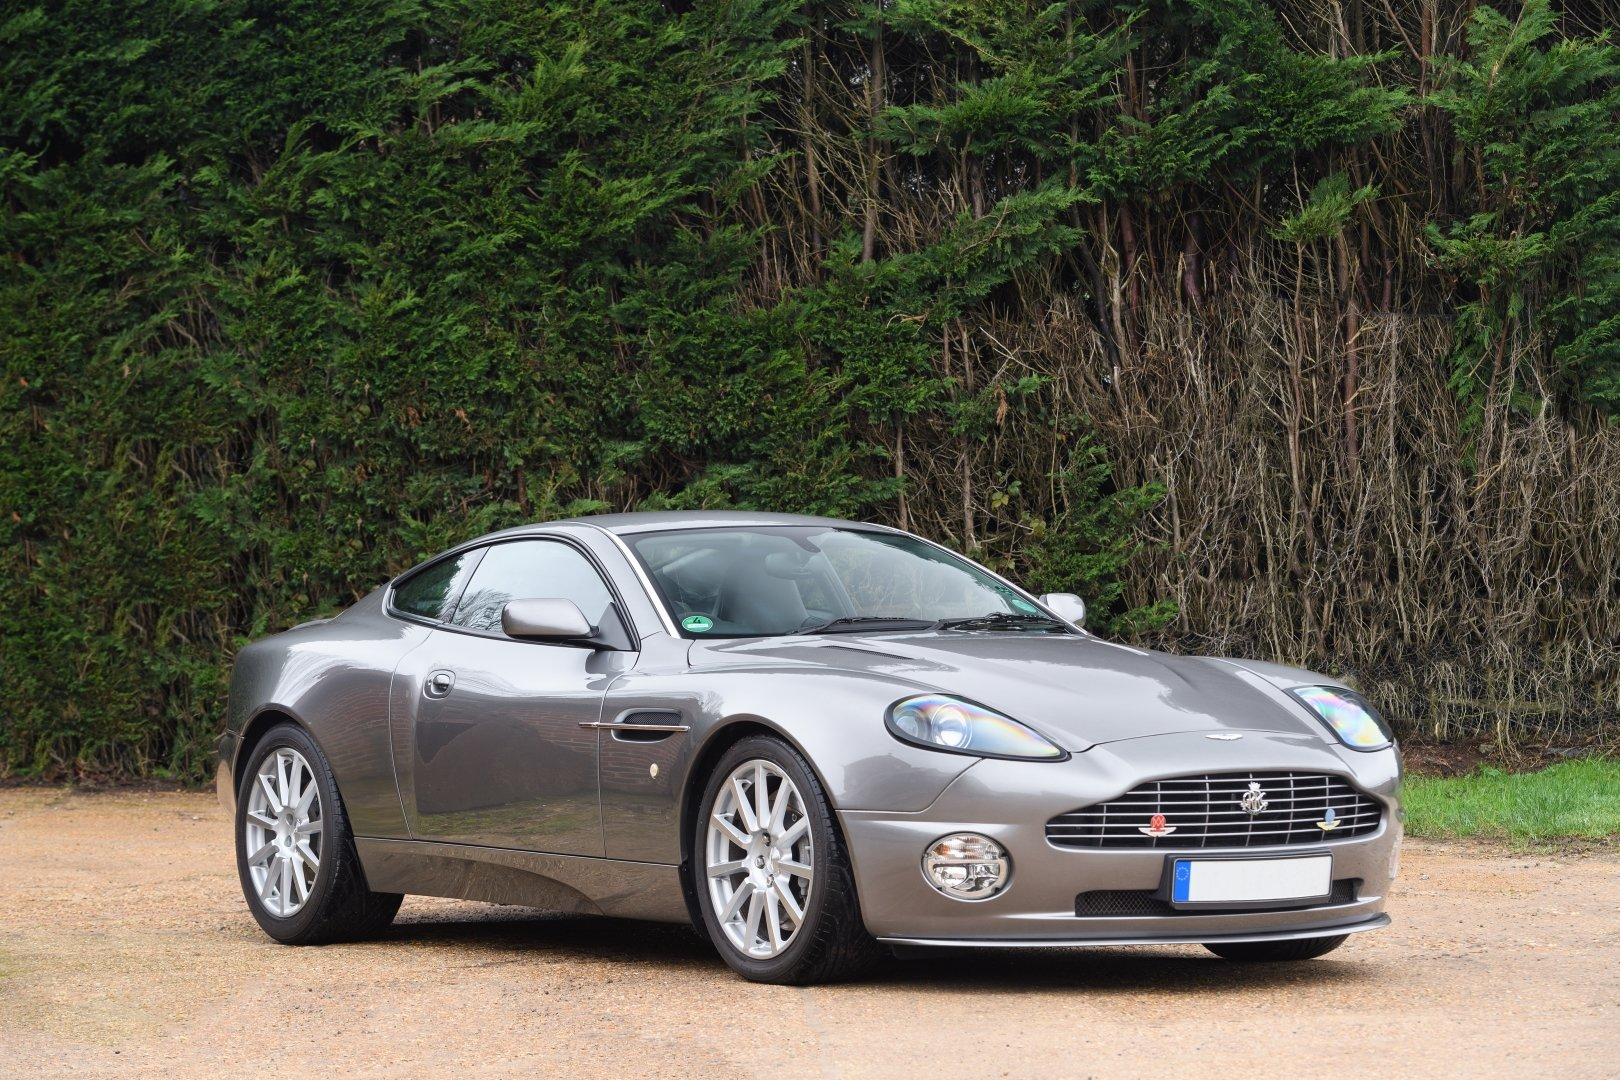 2005 Aston Martin Vanquish S - Ex David Richards, Prodrive For Sale (picture 1 of 12)